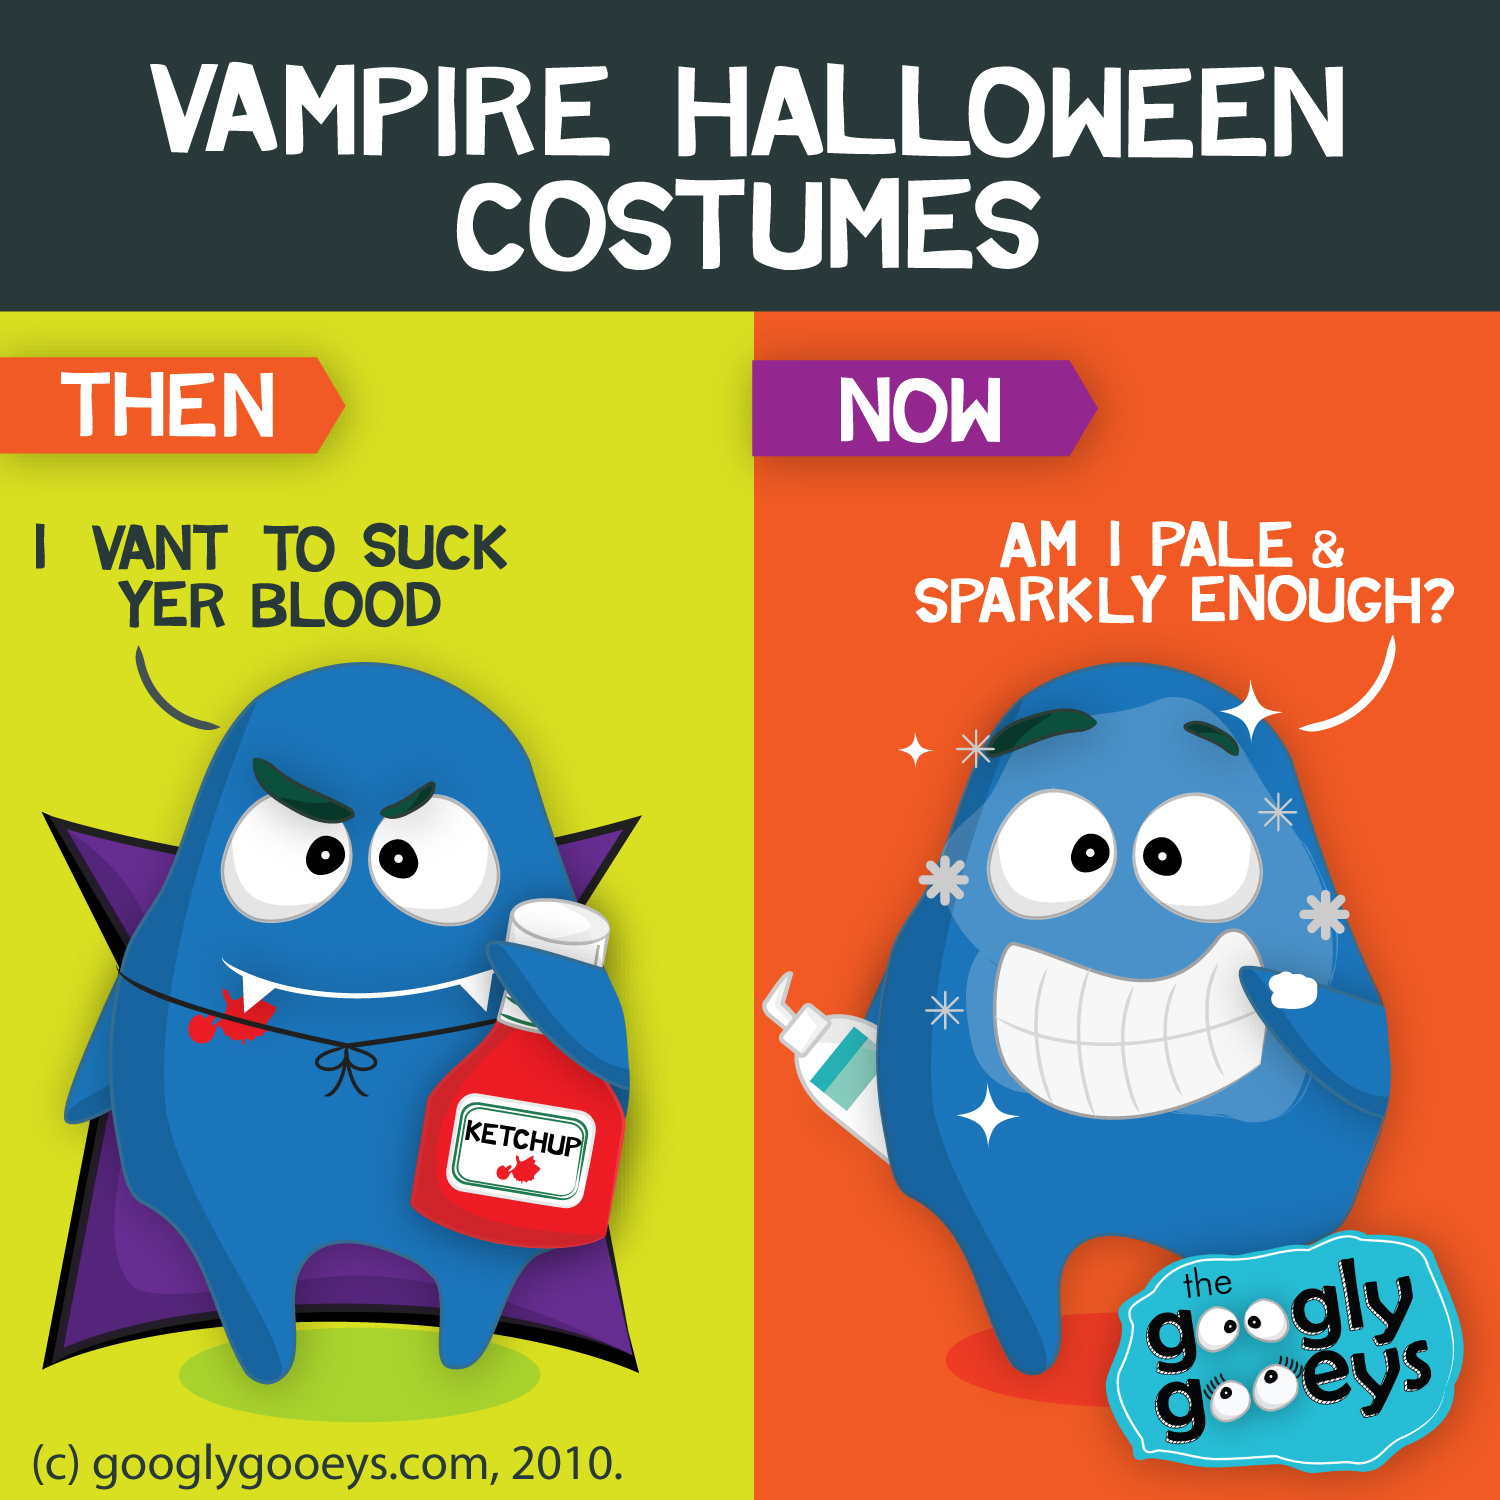 Vampire Costumes for Halloween: Then & Now